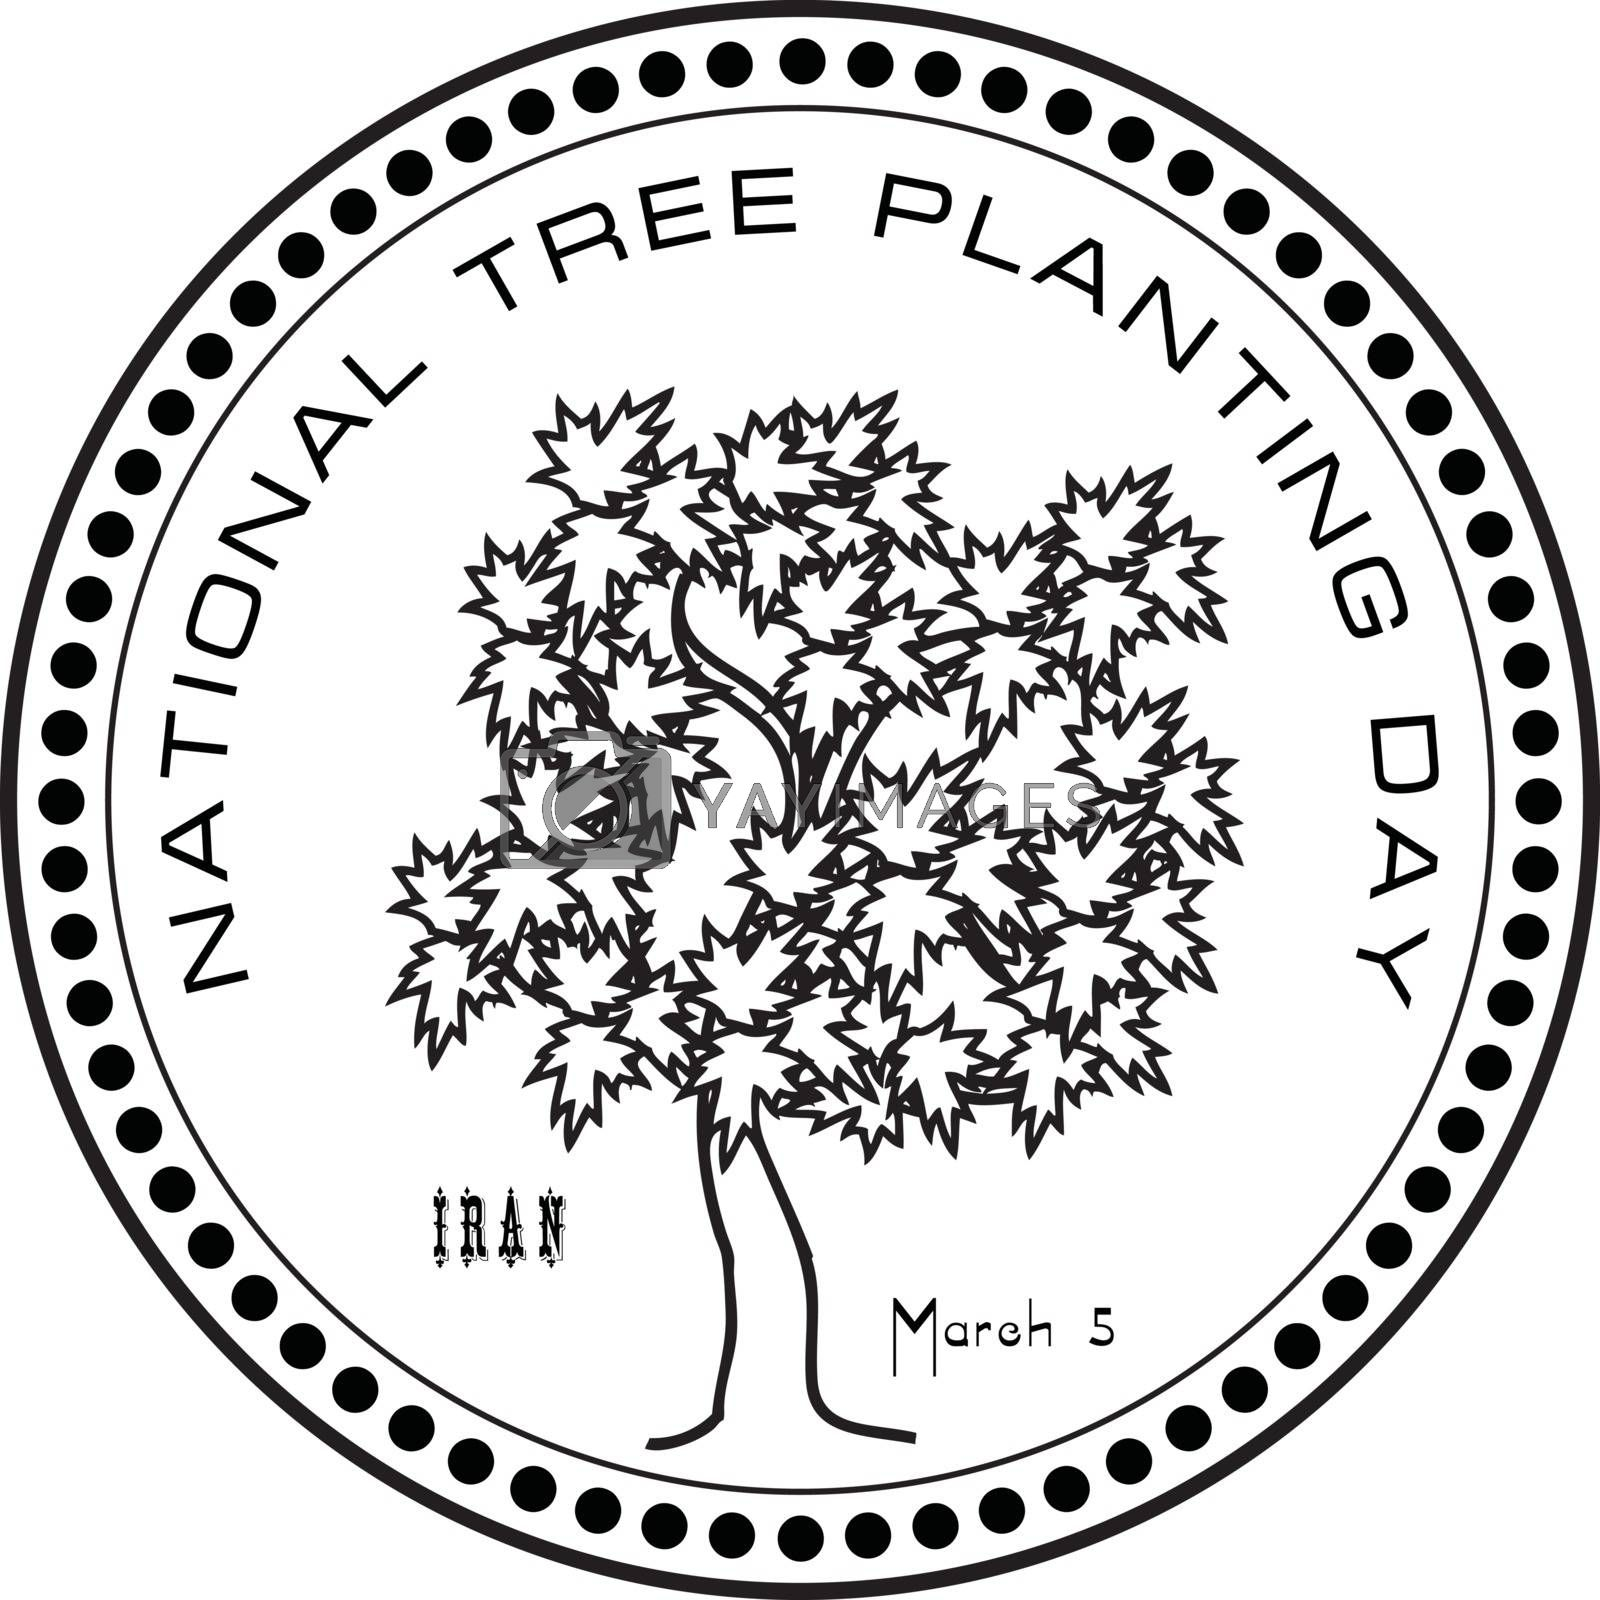 Royalty free image of National Tree Planting Day by VIPDesignUSA